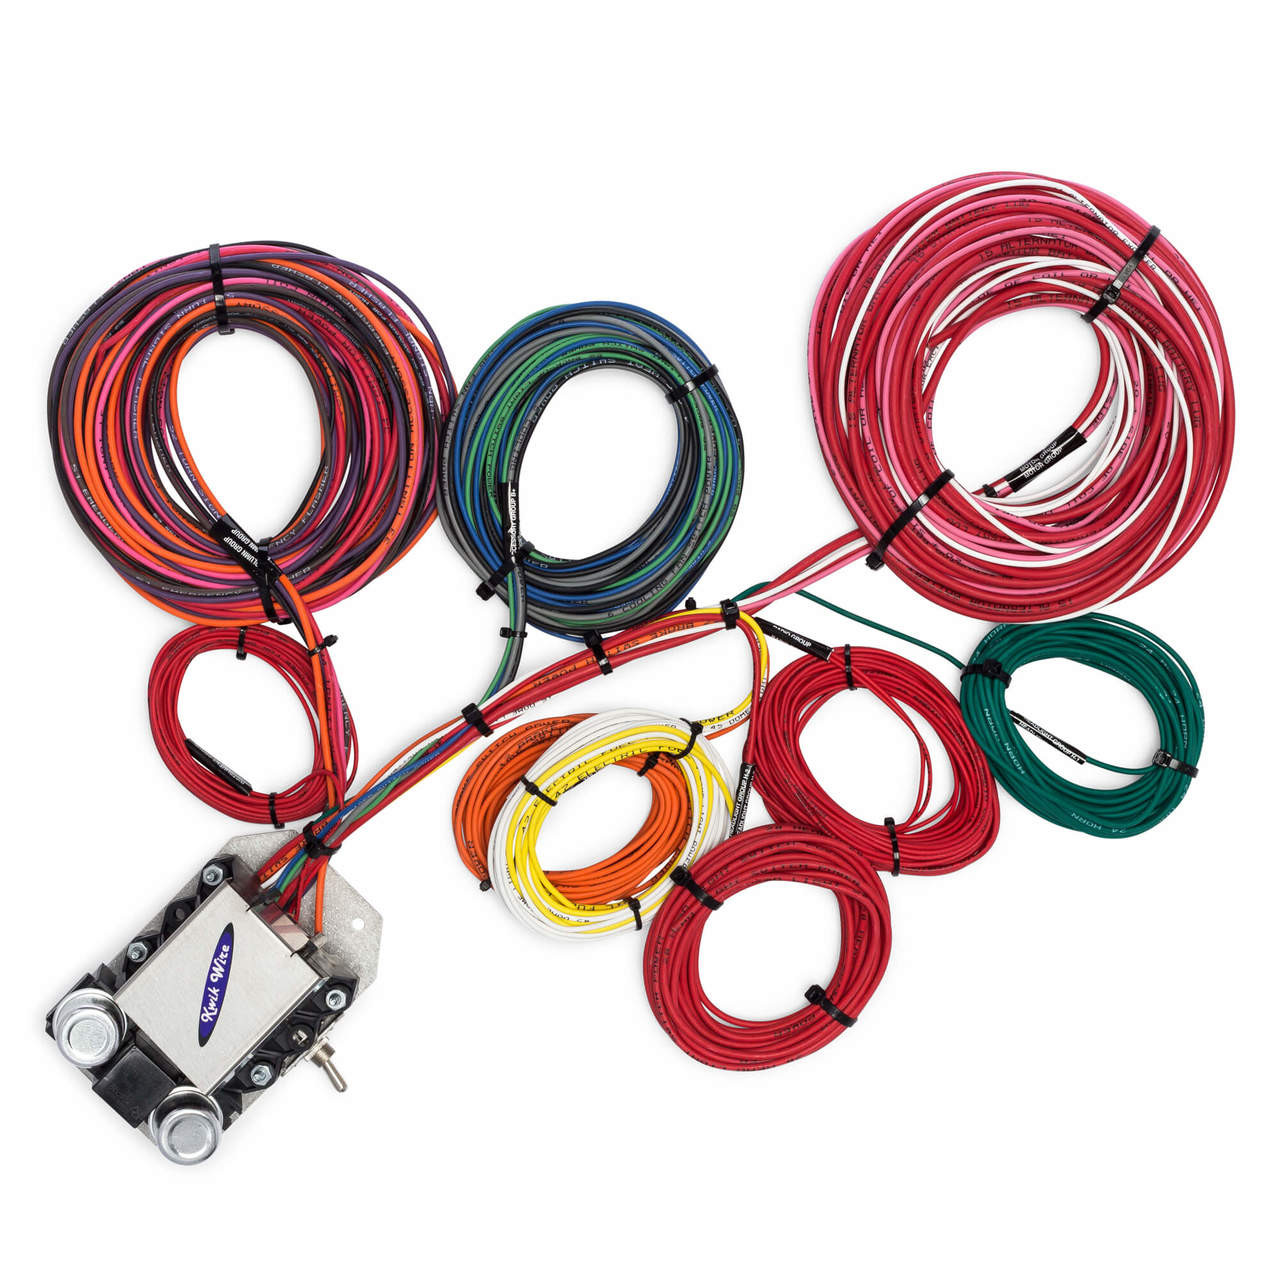 14 circuit trunk mount wire harness kwikwirecom electrify your ride